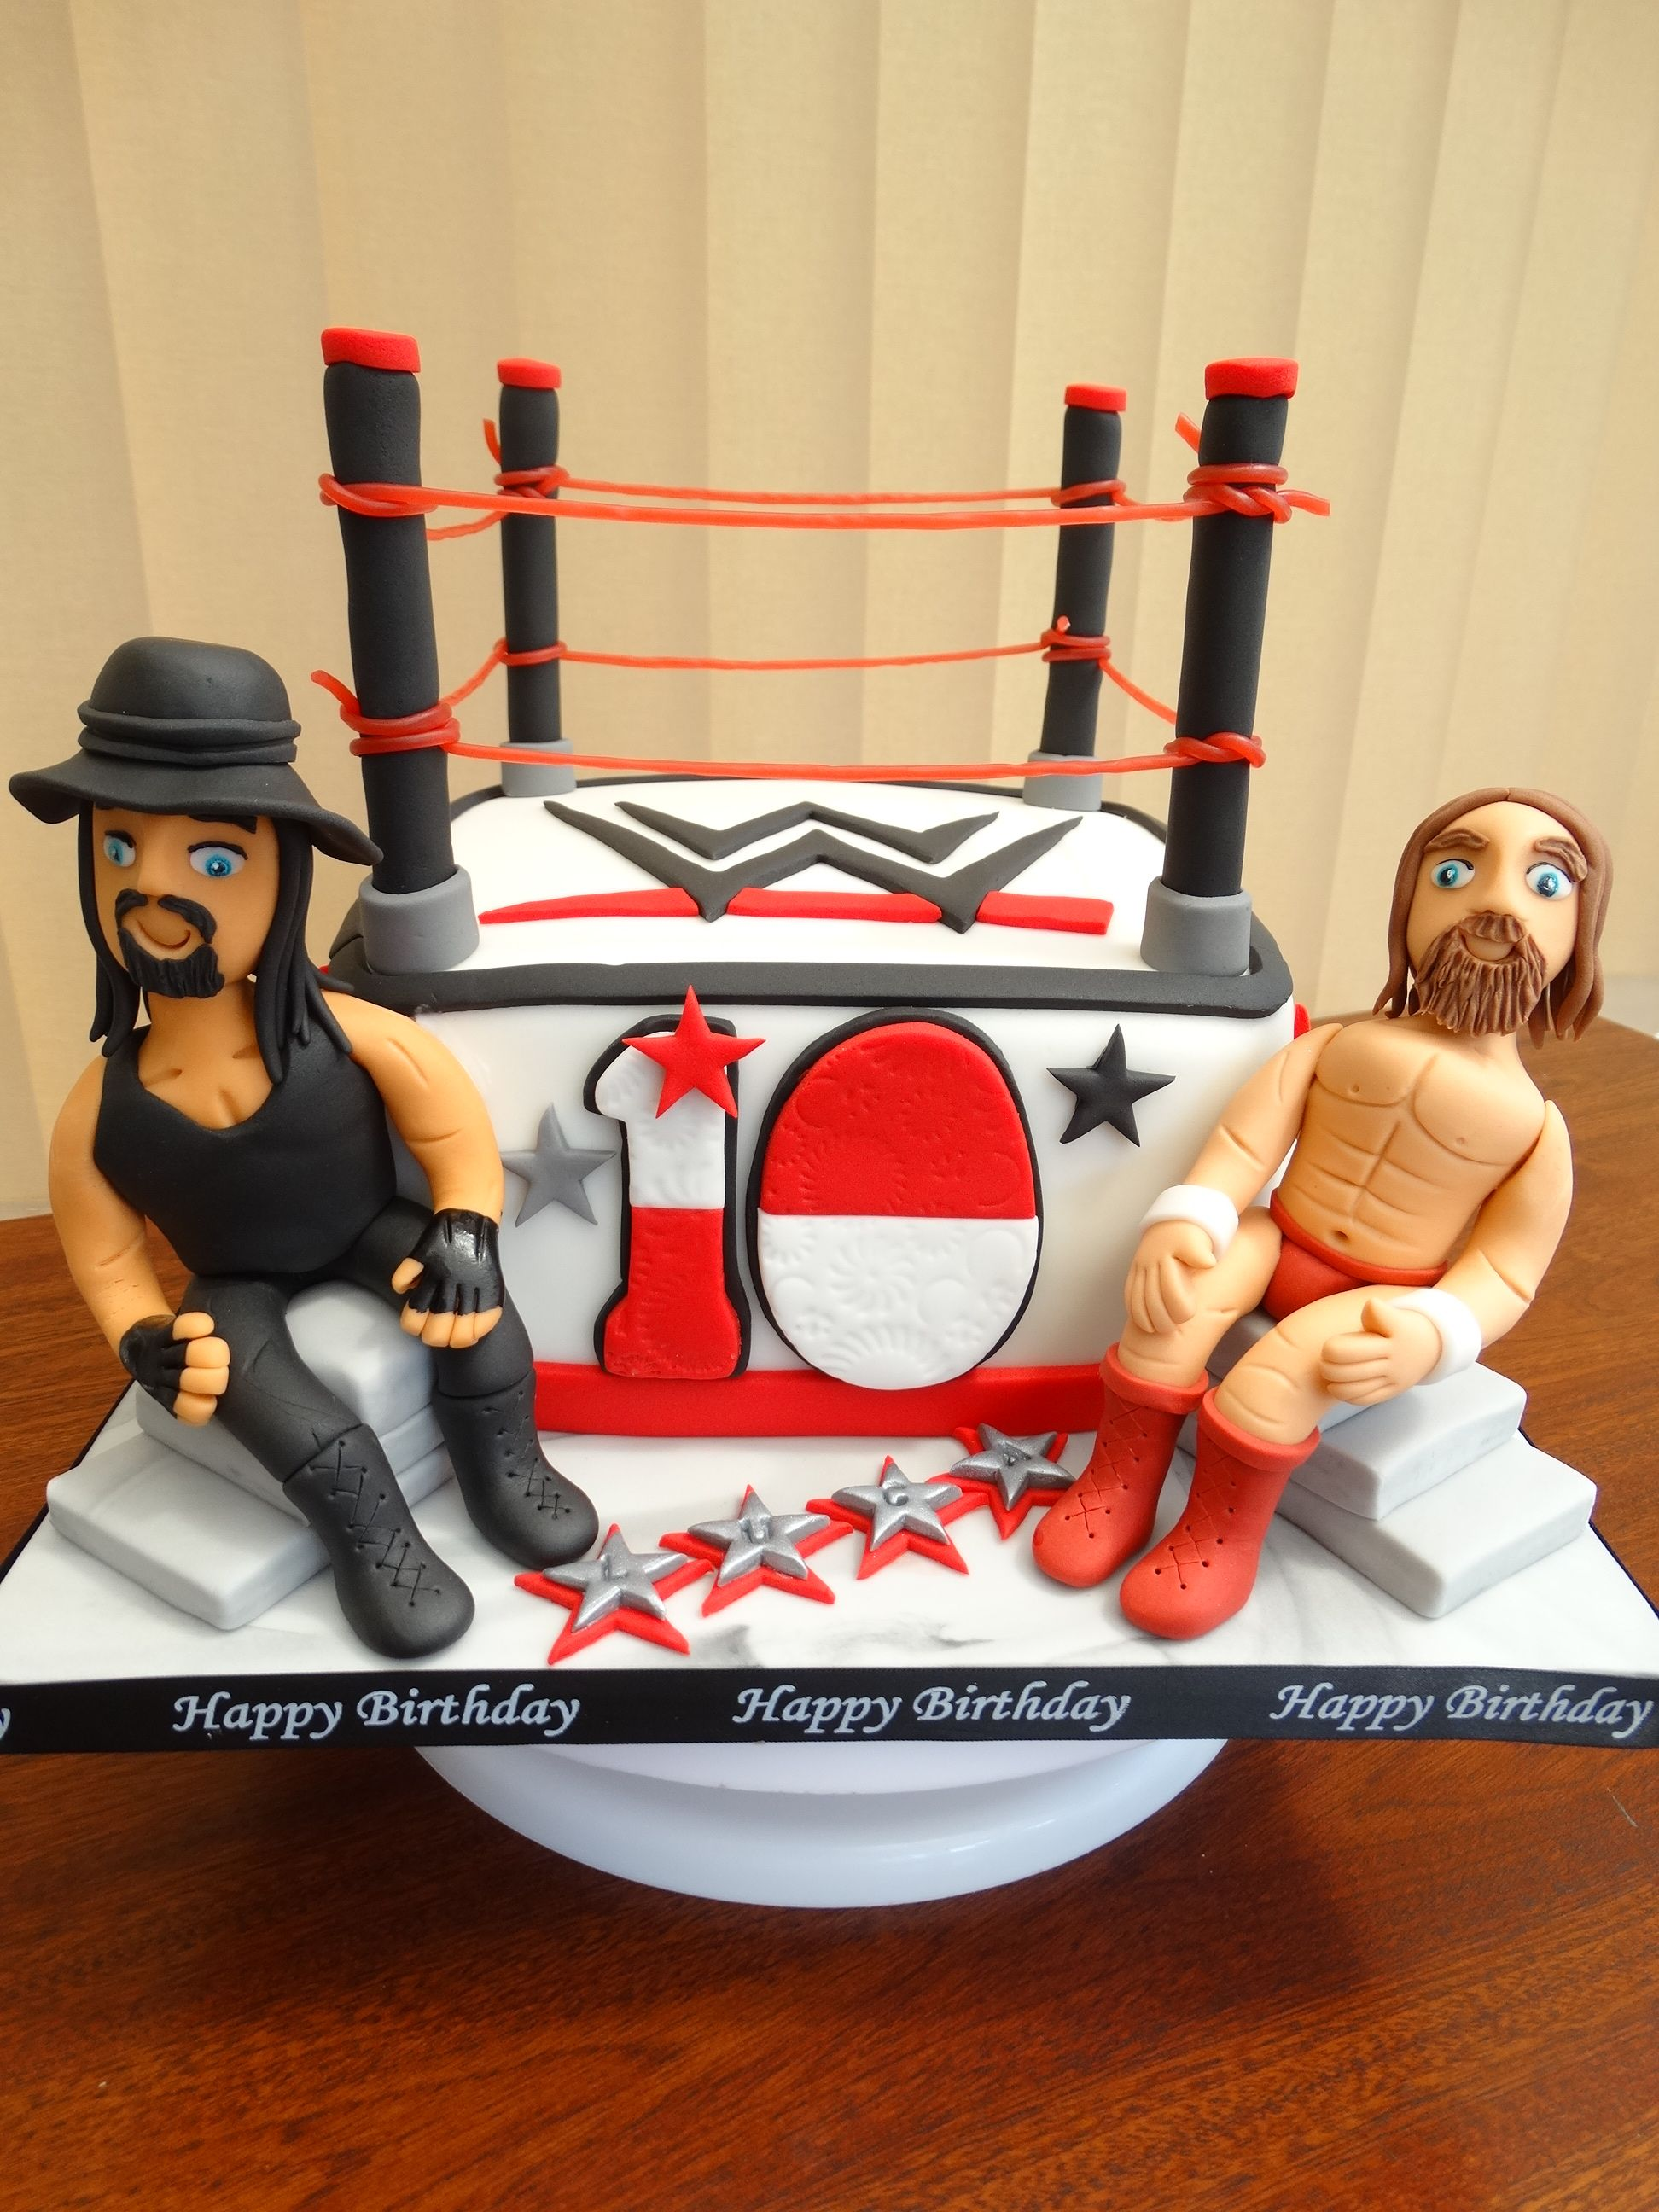 Wwe Cake With The Undertaker And Daniel Bryan Wrestlers D Xmcx